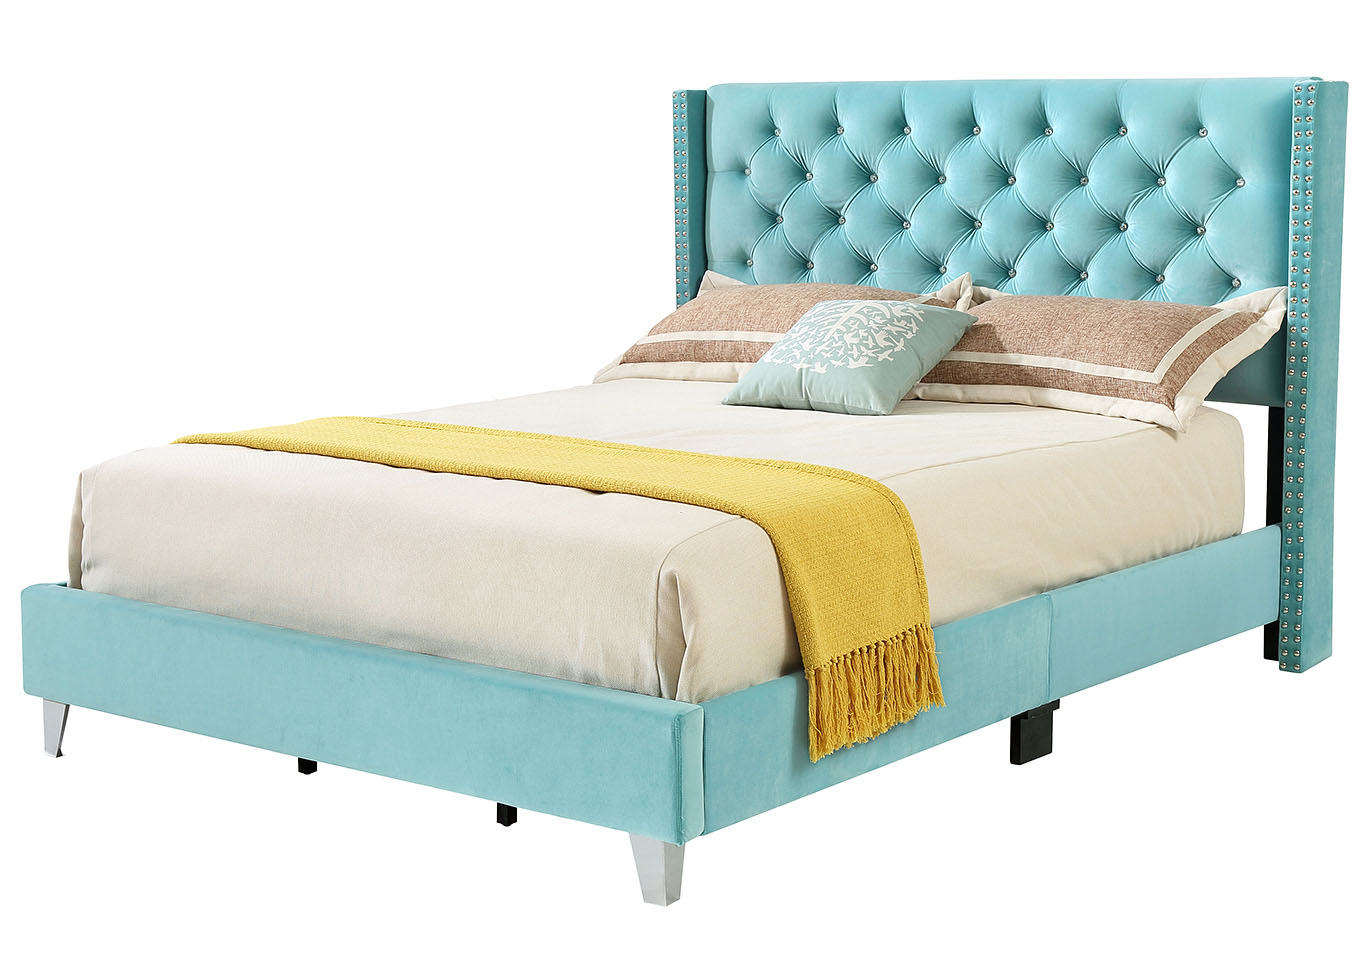 Ocean Blue Velvet Full Upholstered Bed,Glory Furniture